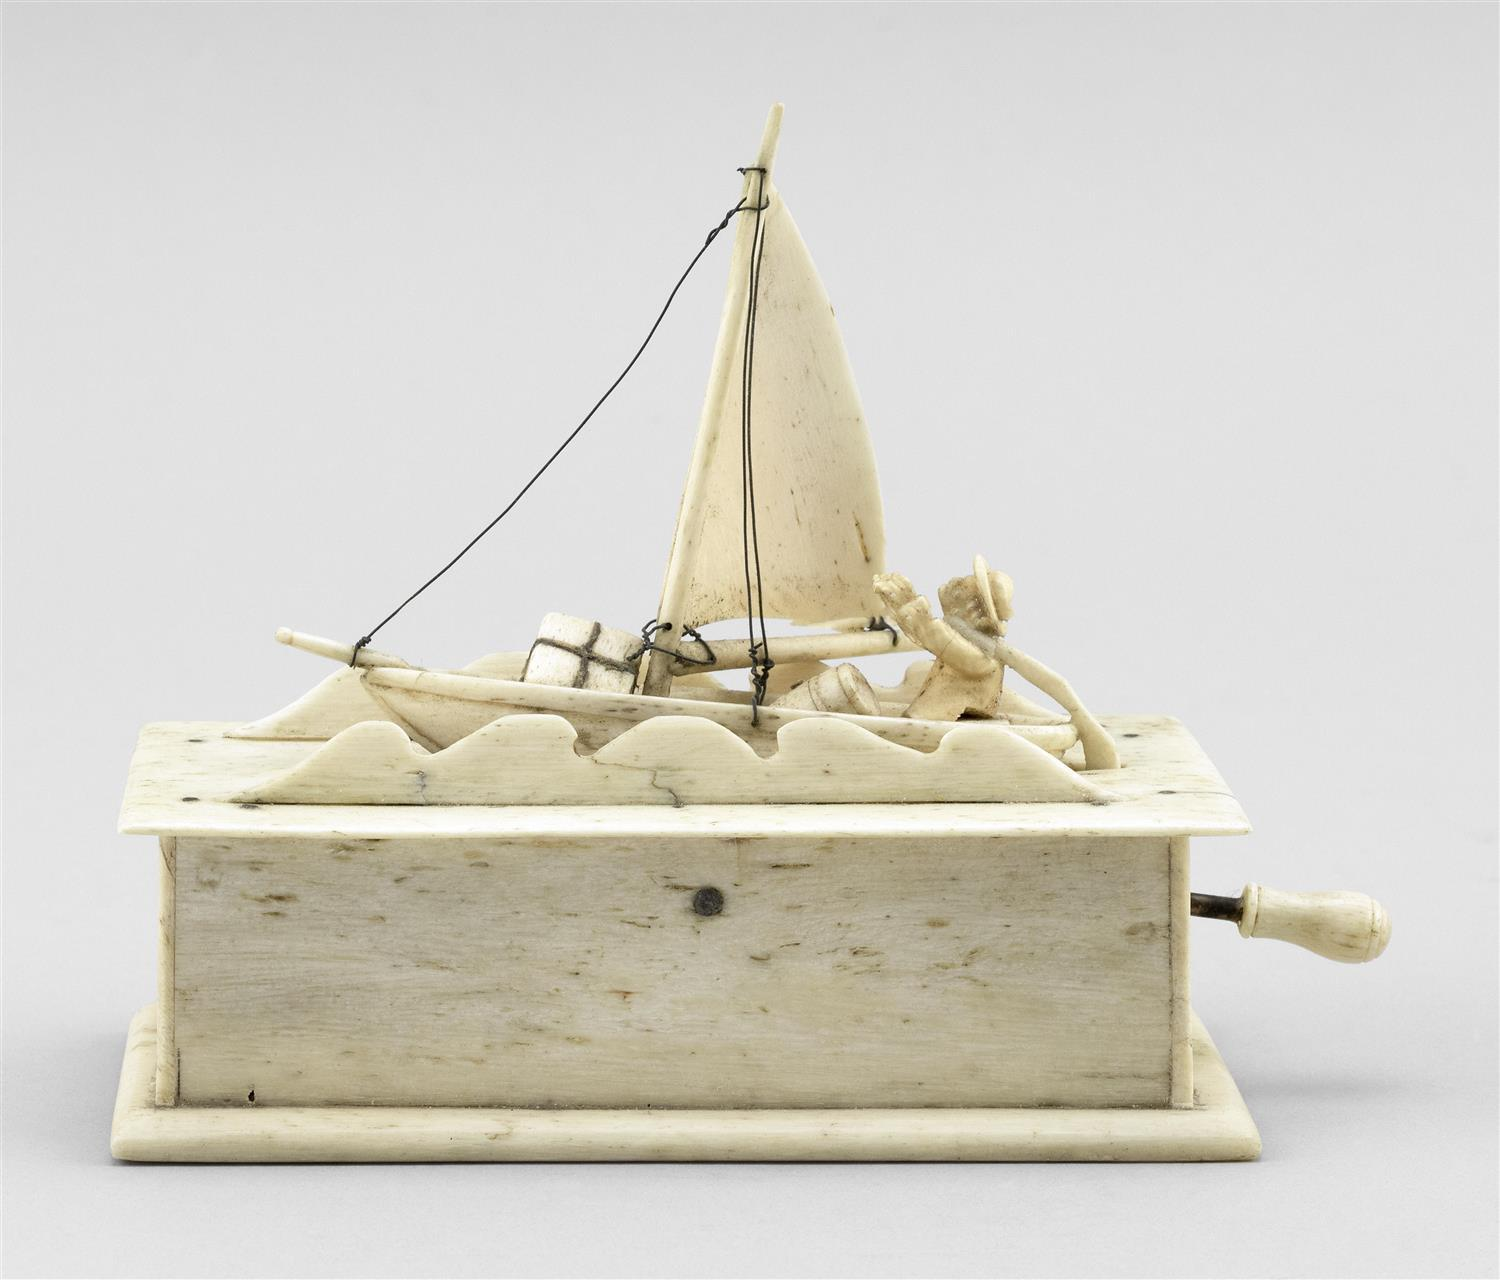 WHALEBONE SAILBOAT TOY Manned sailboat set into a box with handle at side that rocks the boat. Finely detailed with long bowsprit, b...